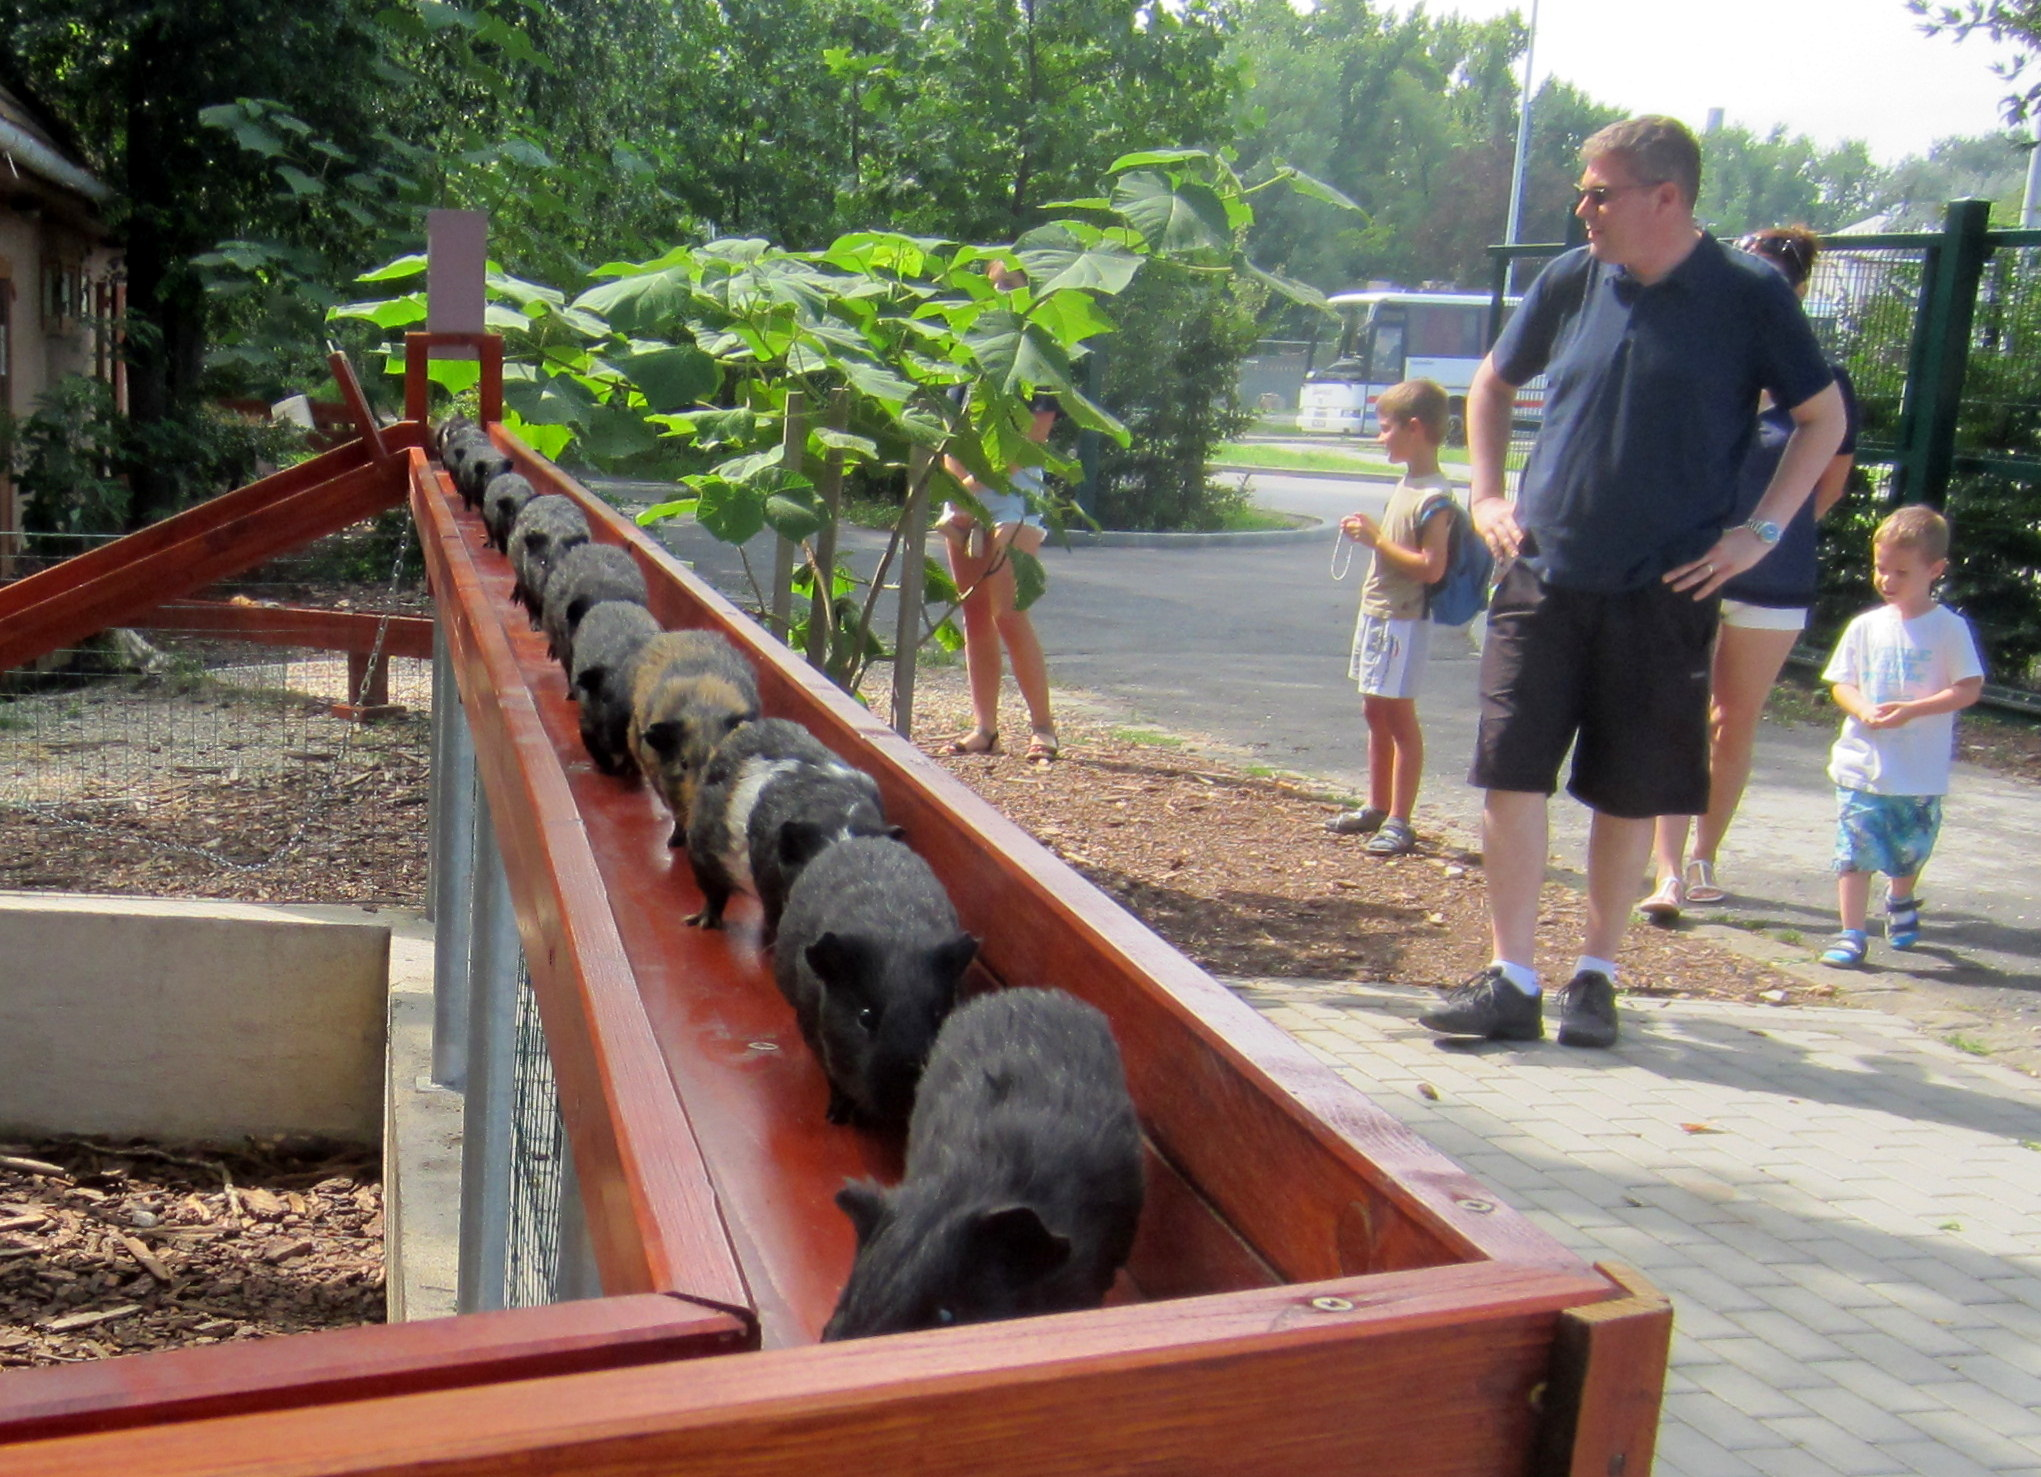 Guinea pig train in Zoo Győr (photo source: www.zoogyor.com)